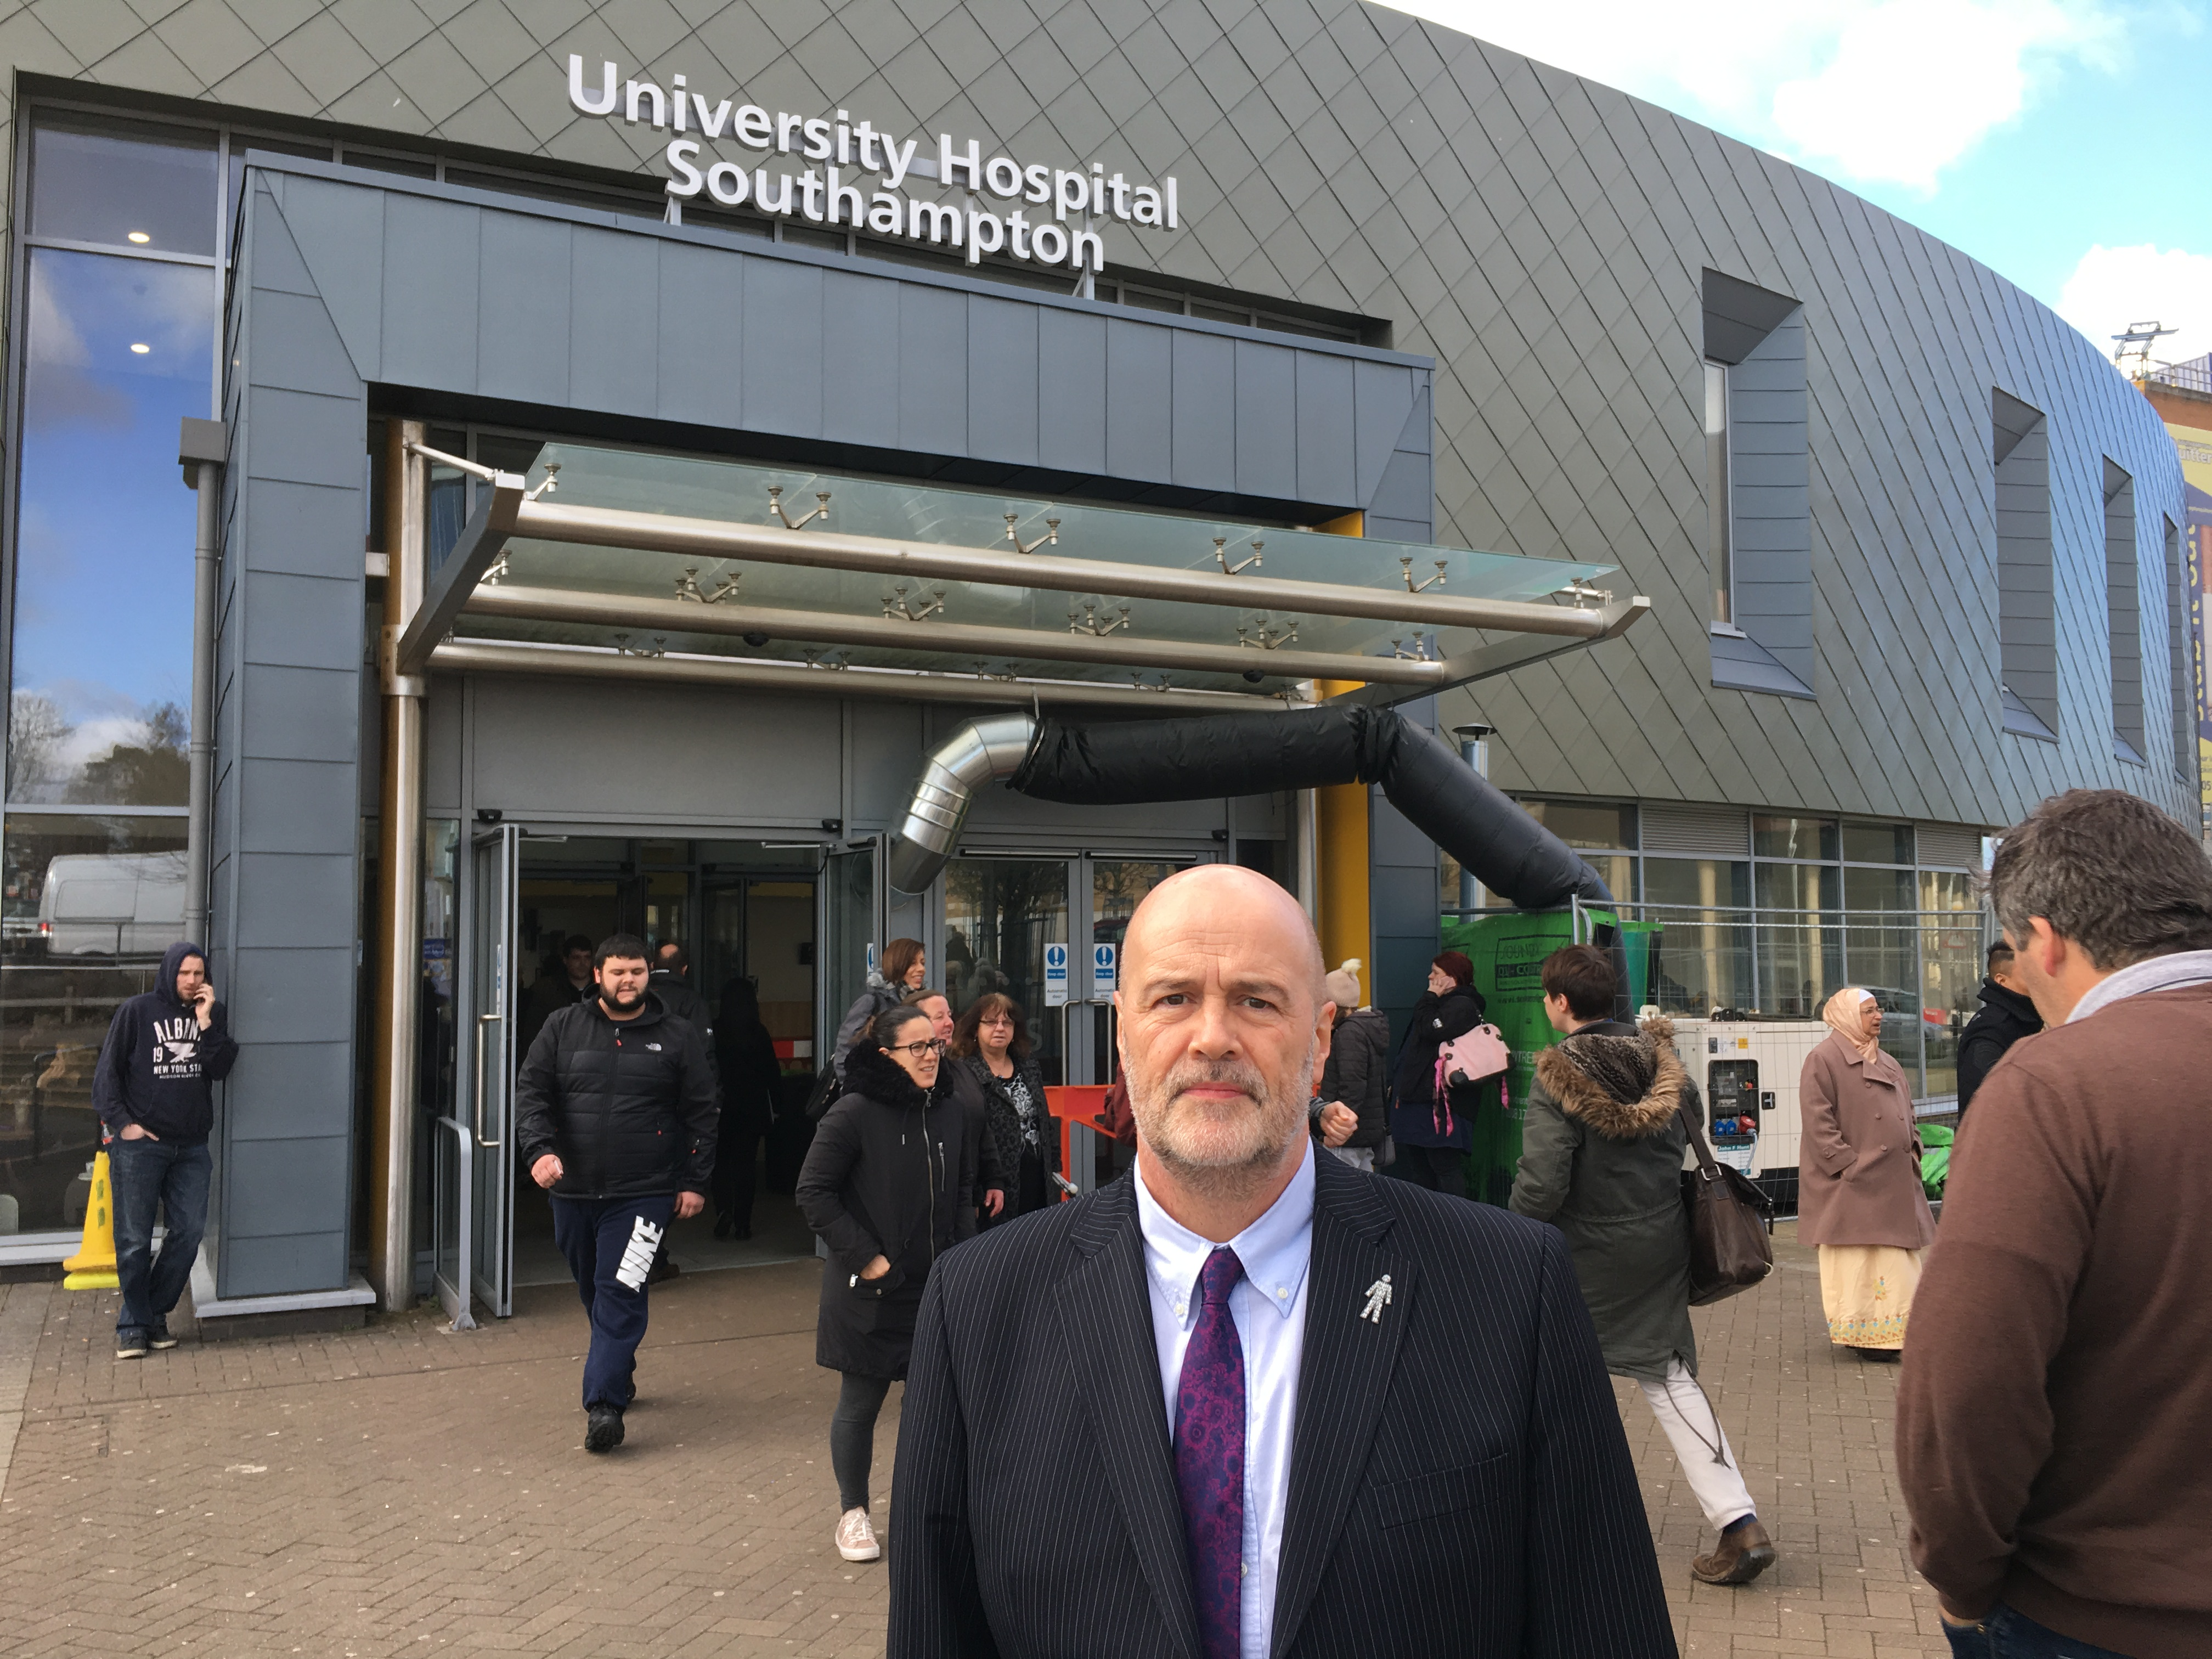 Brexit Undermining Clincial Research at Southampton University Hospital